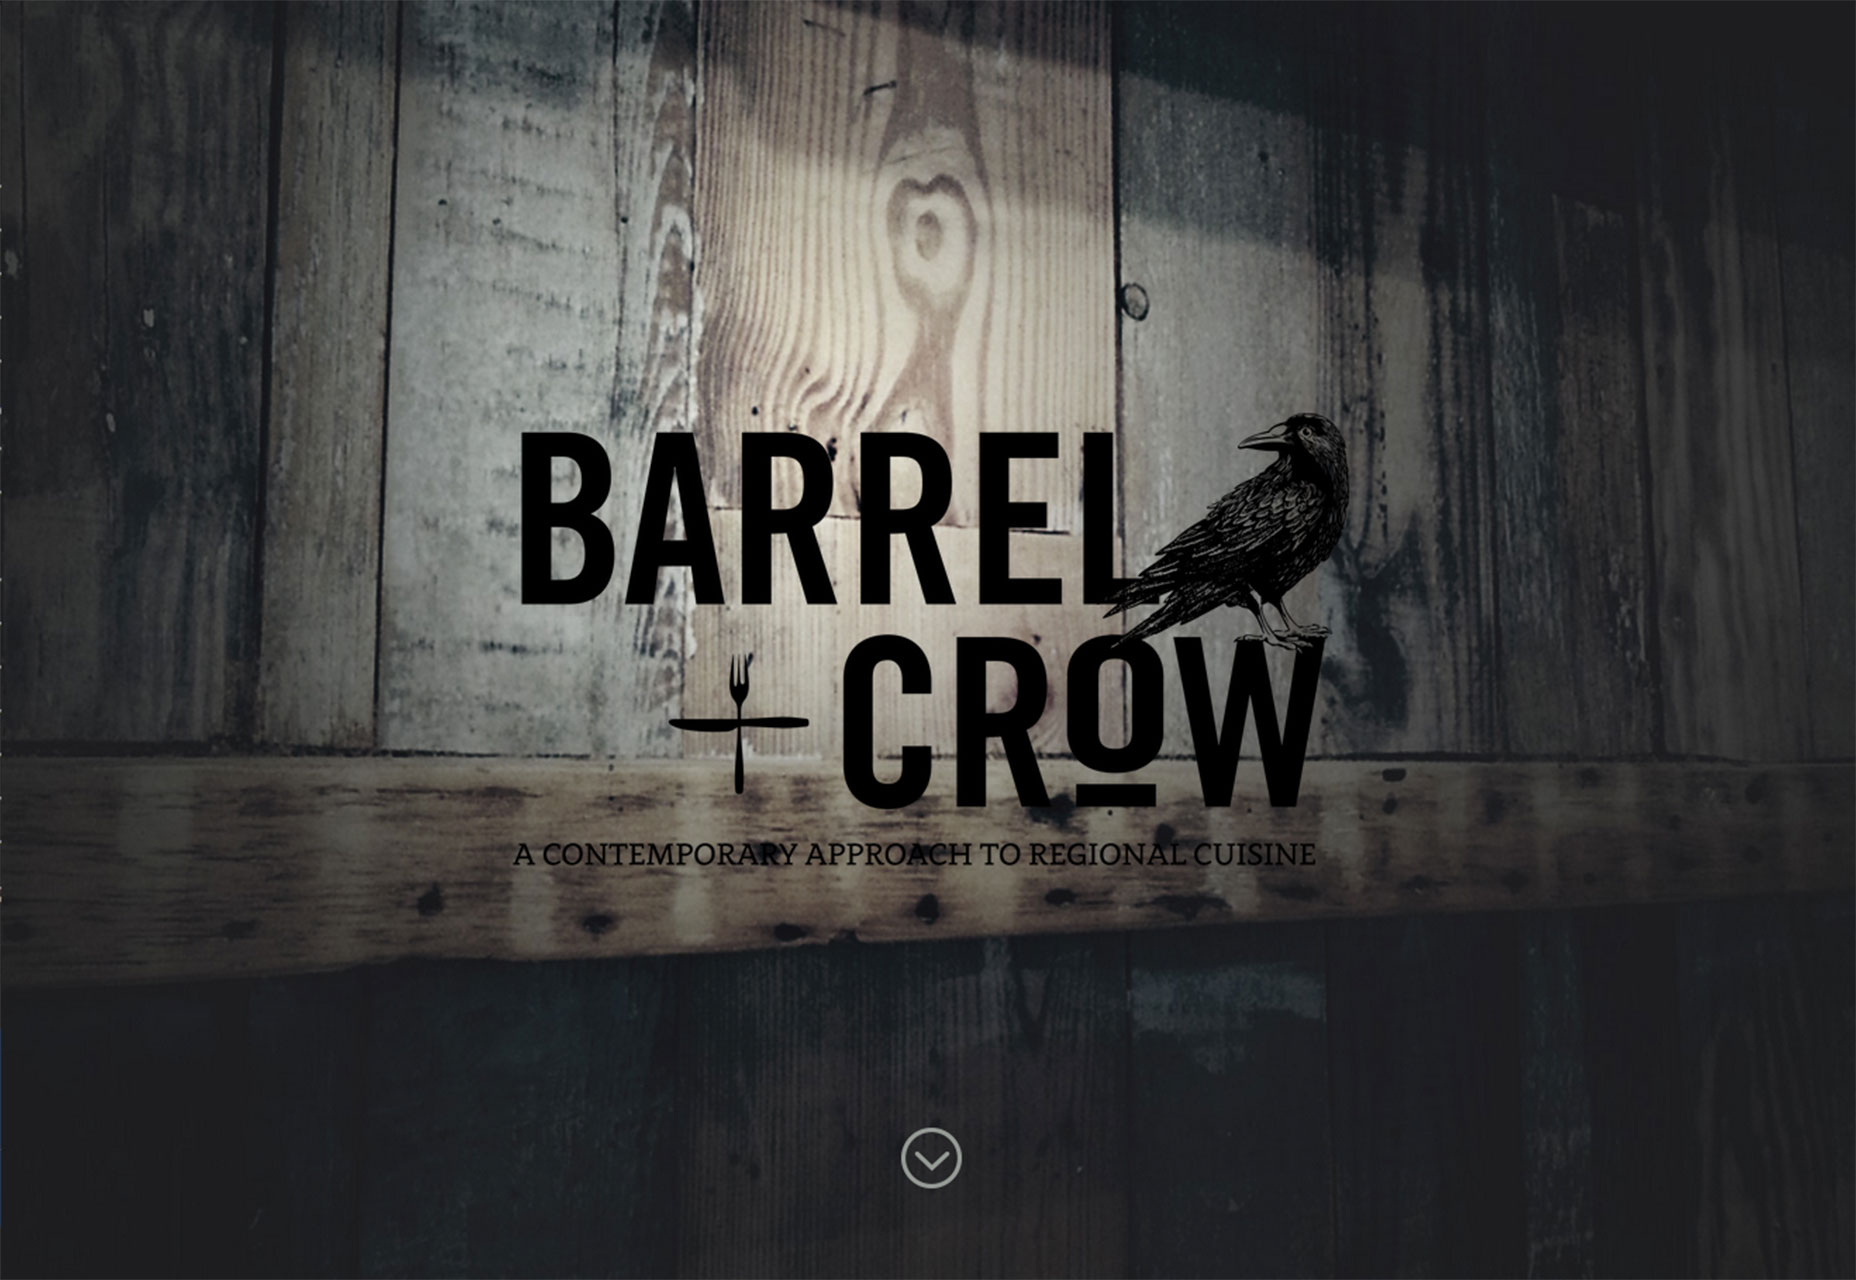 barrel-crow